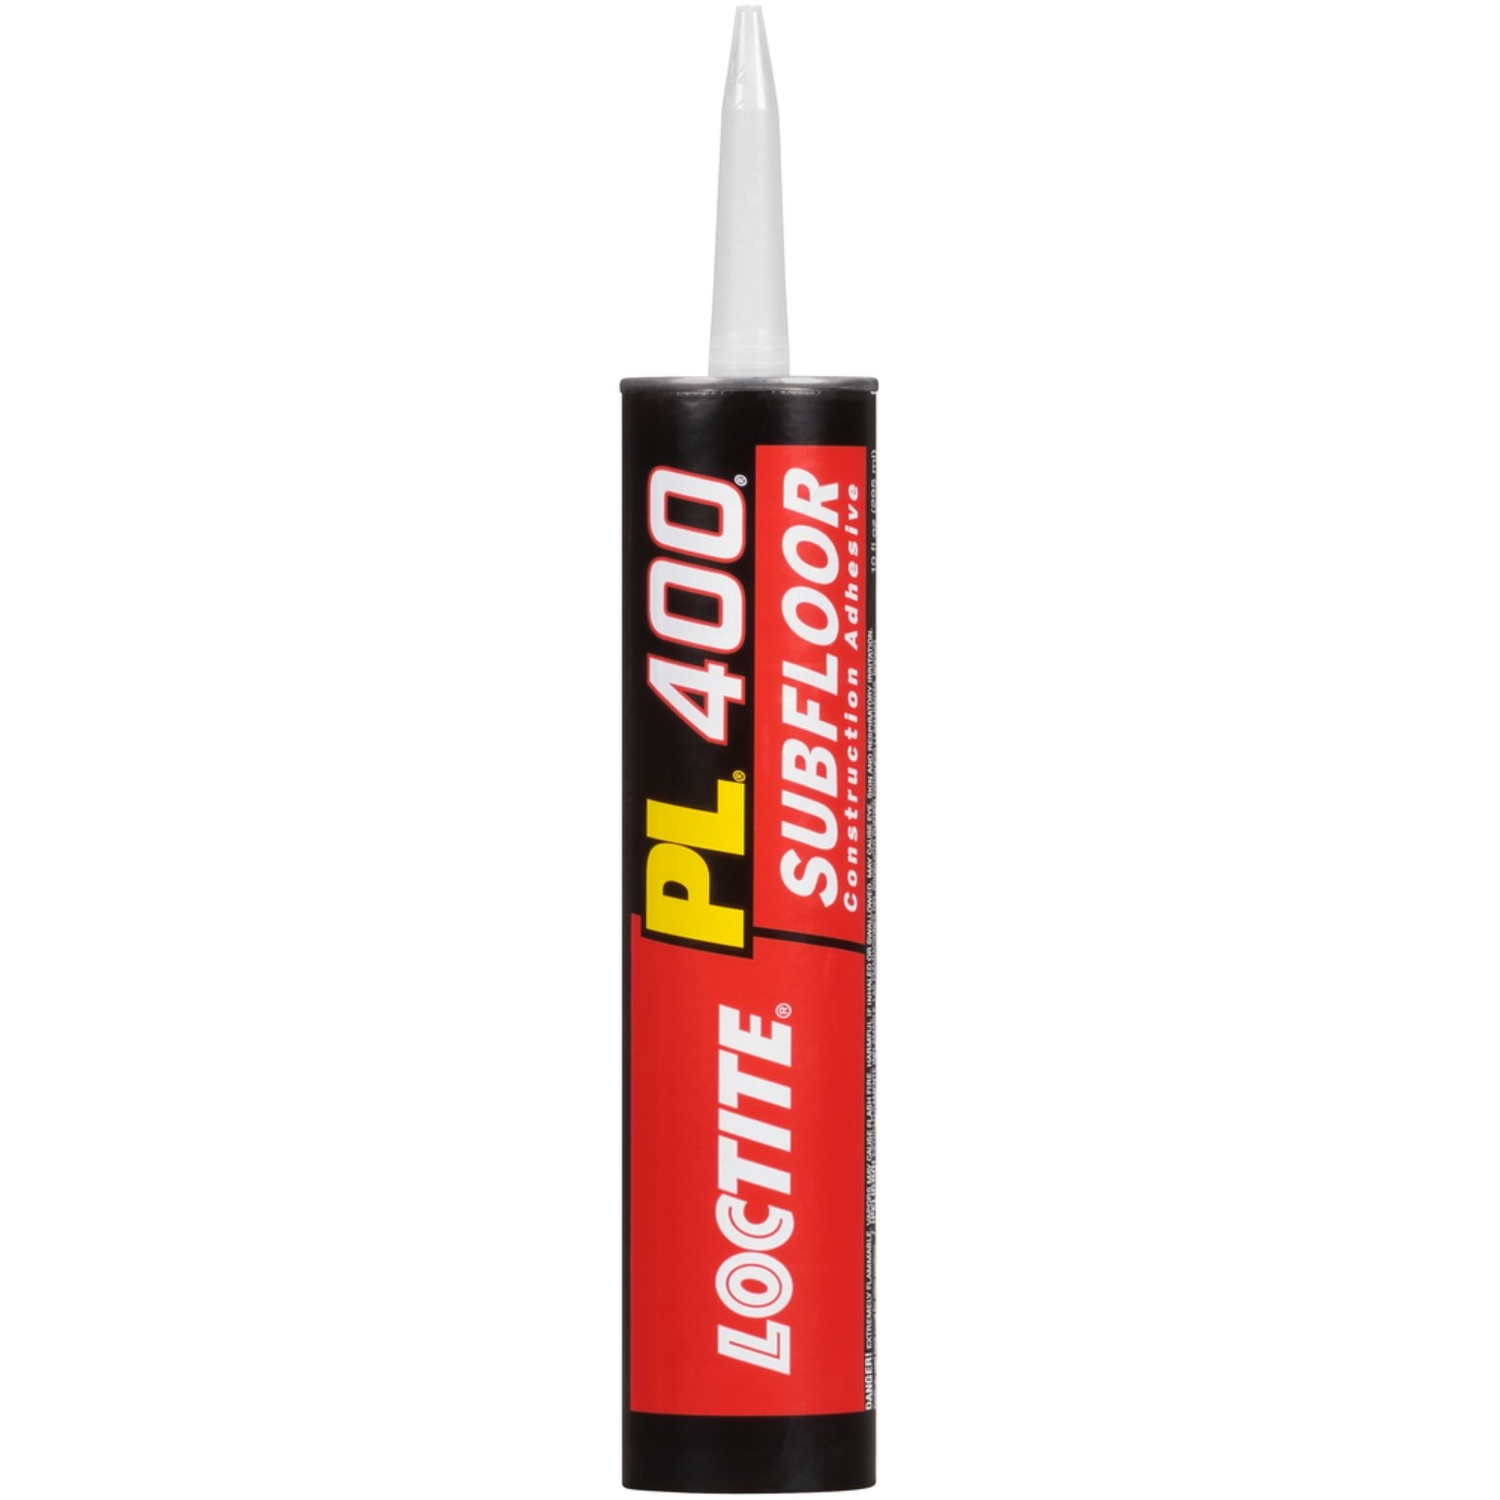 Loctite  PL 400  Synthetic Rubber  Subfloor Construction Adhesive  10 oz.